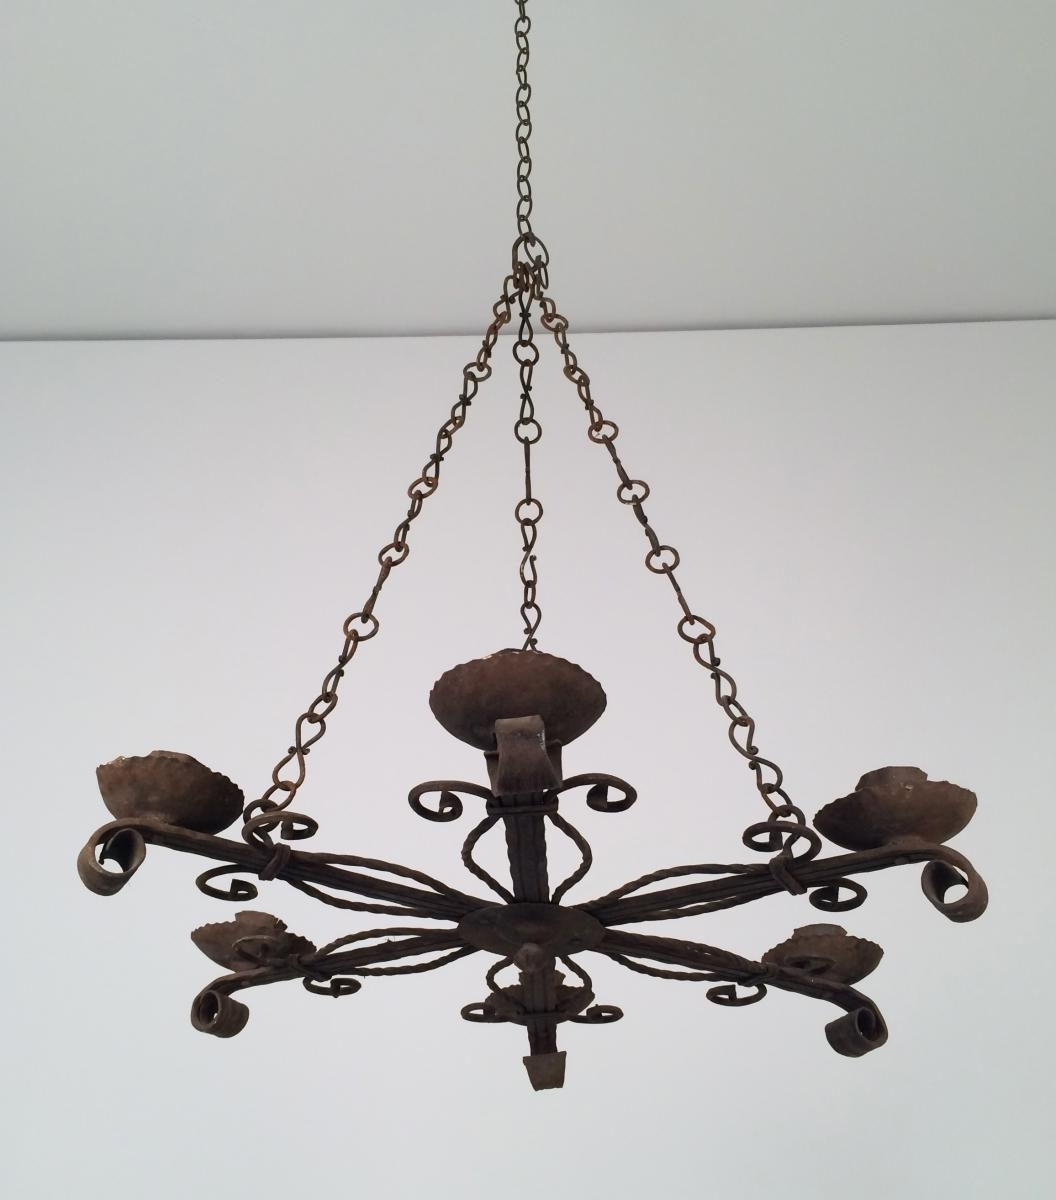 Wrought Iron Chandelier With 5 Candle Holders, 1920S For Sale At Pamono With 2017 Wrought Iron Chandelier (View 3 of 15)